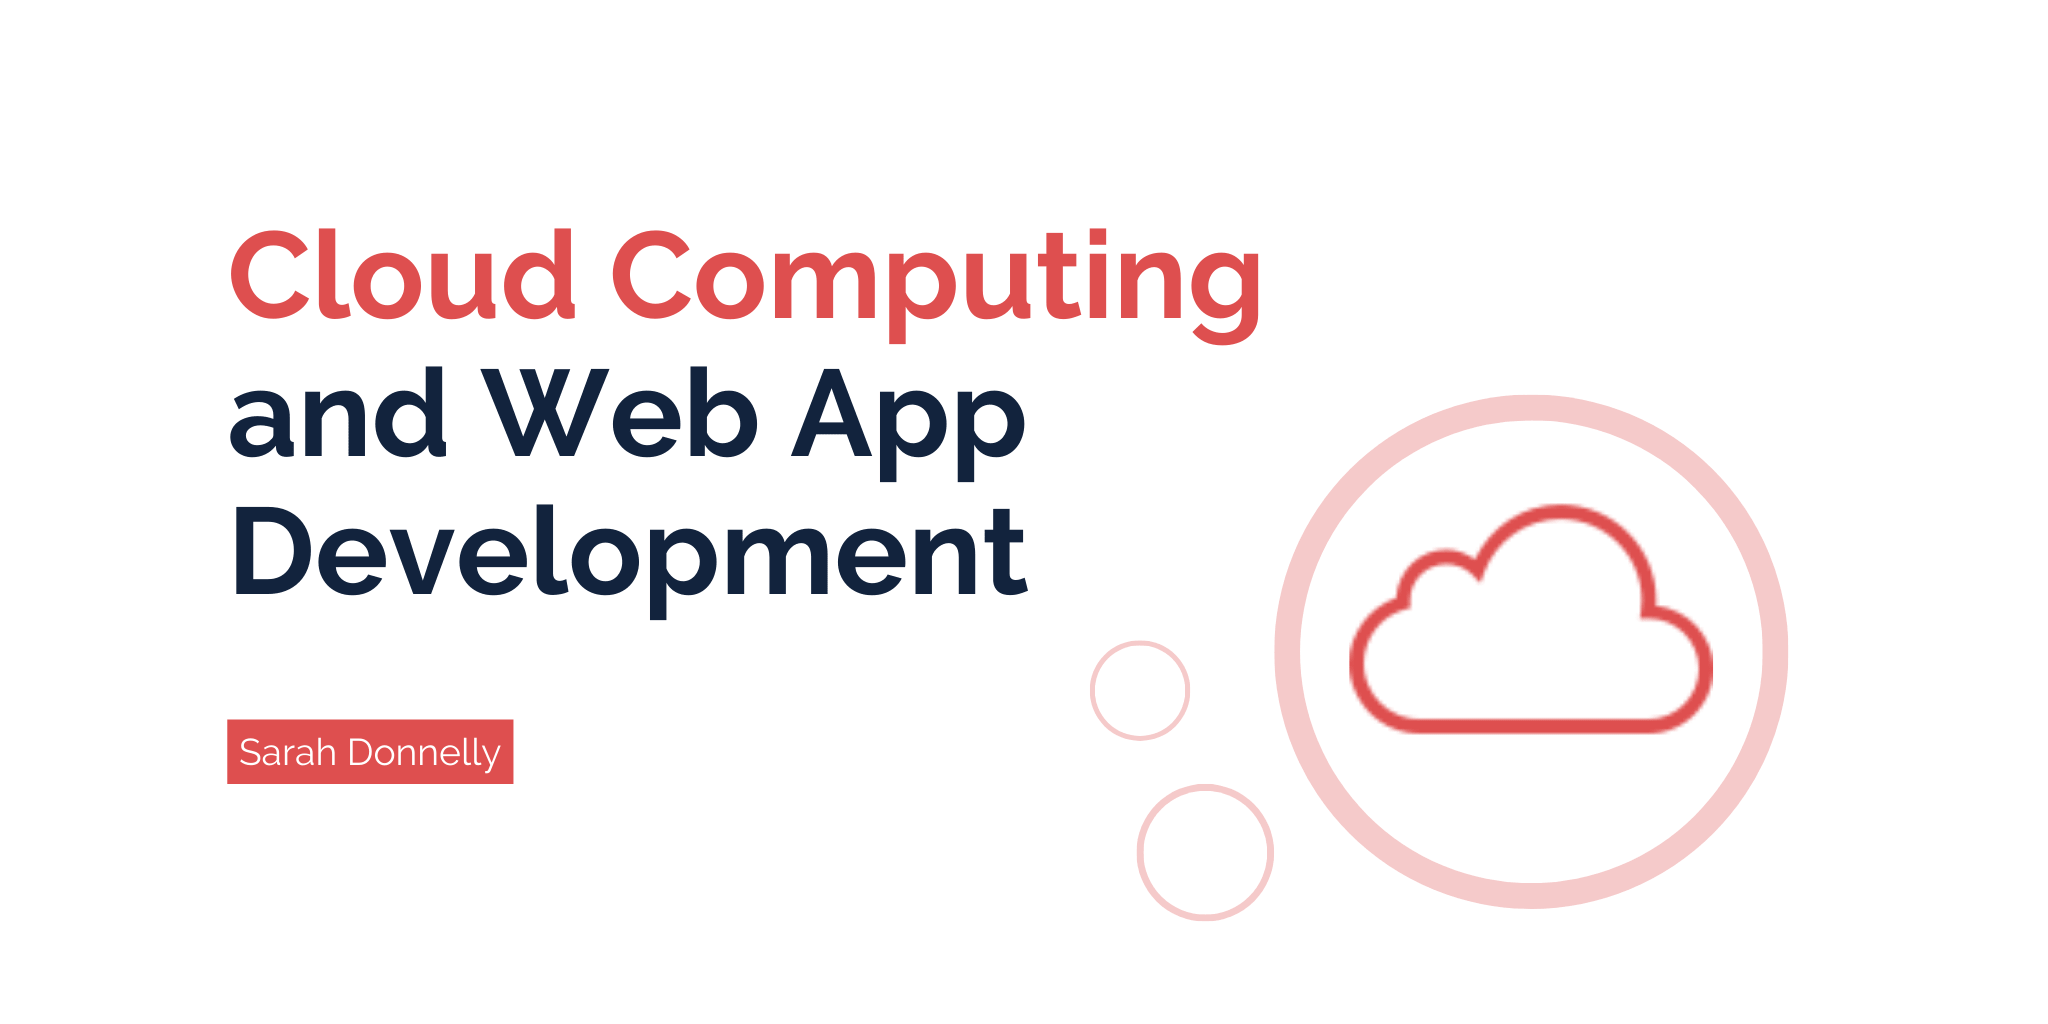 Important Ways Cloud Computing Improves Web App Development